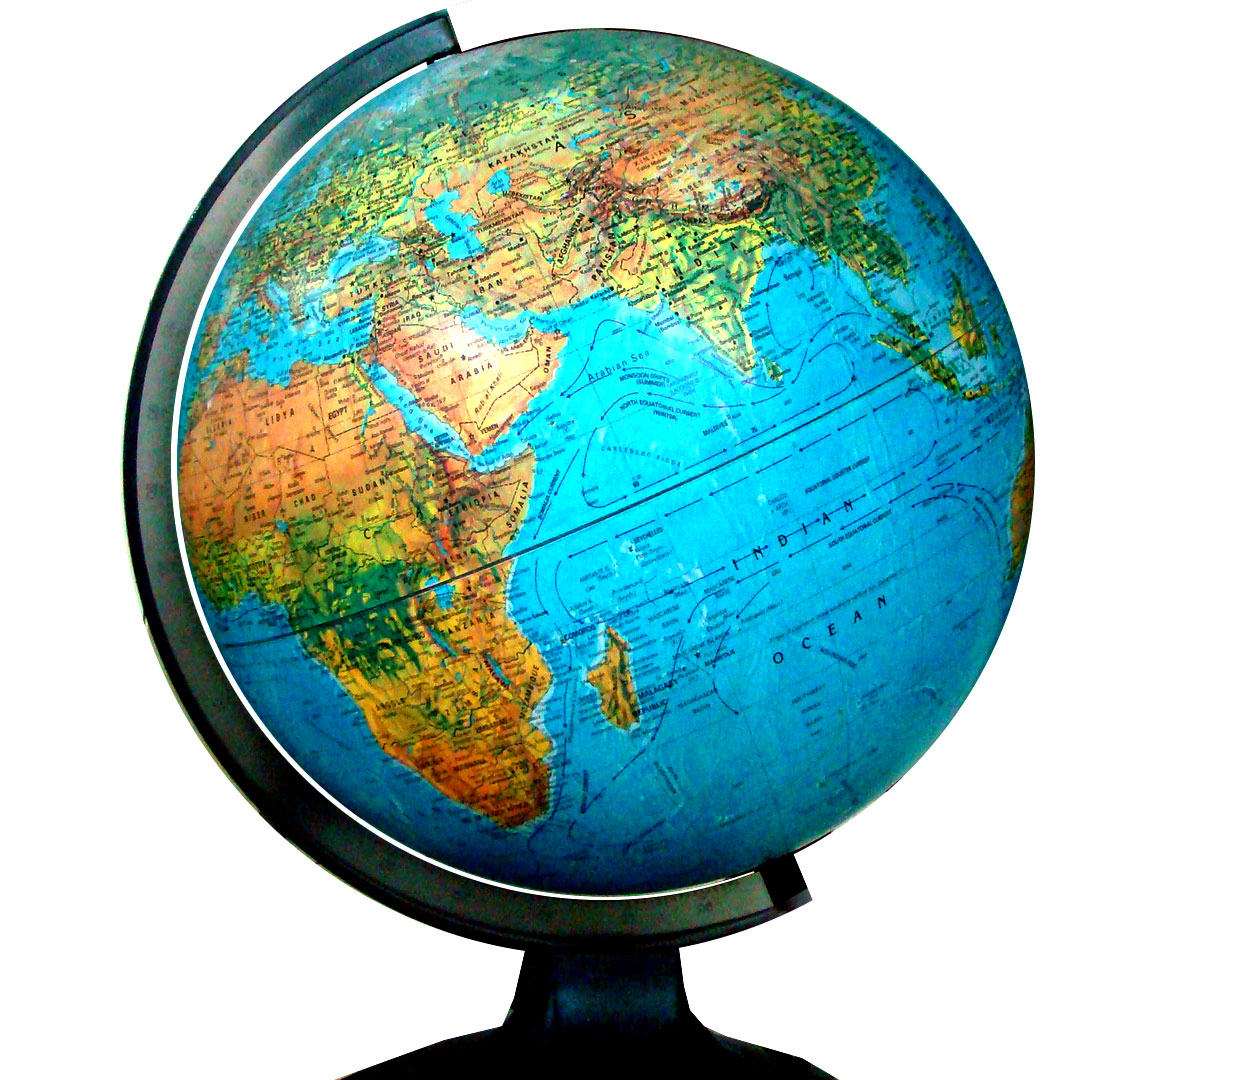 Globe, World globe, Political world globe, Big Globe of world